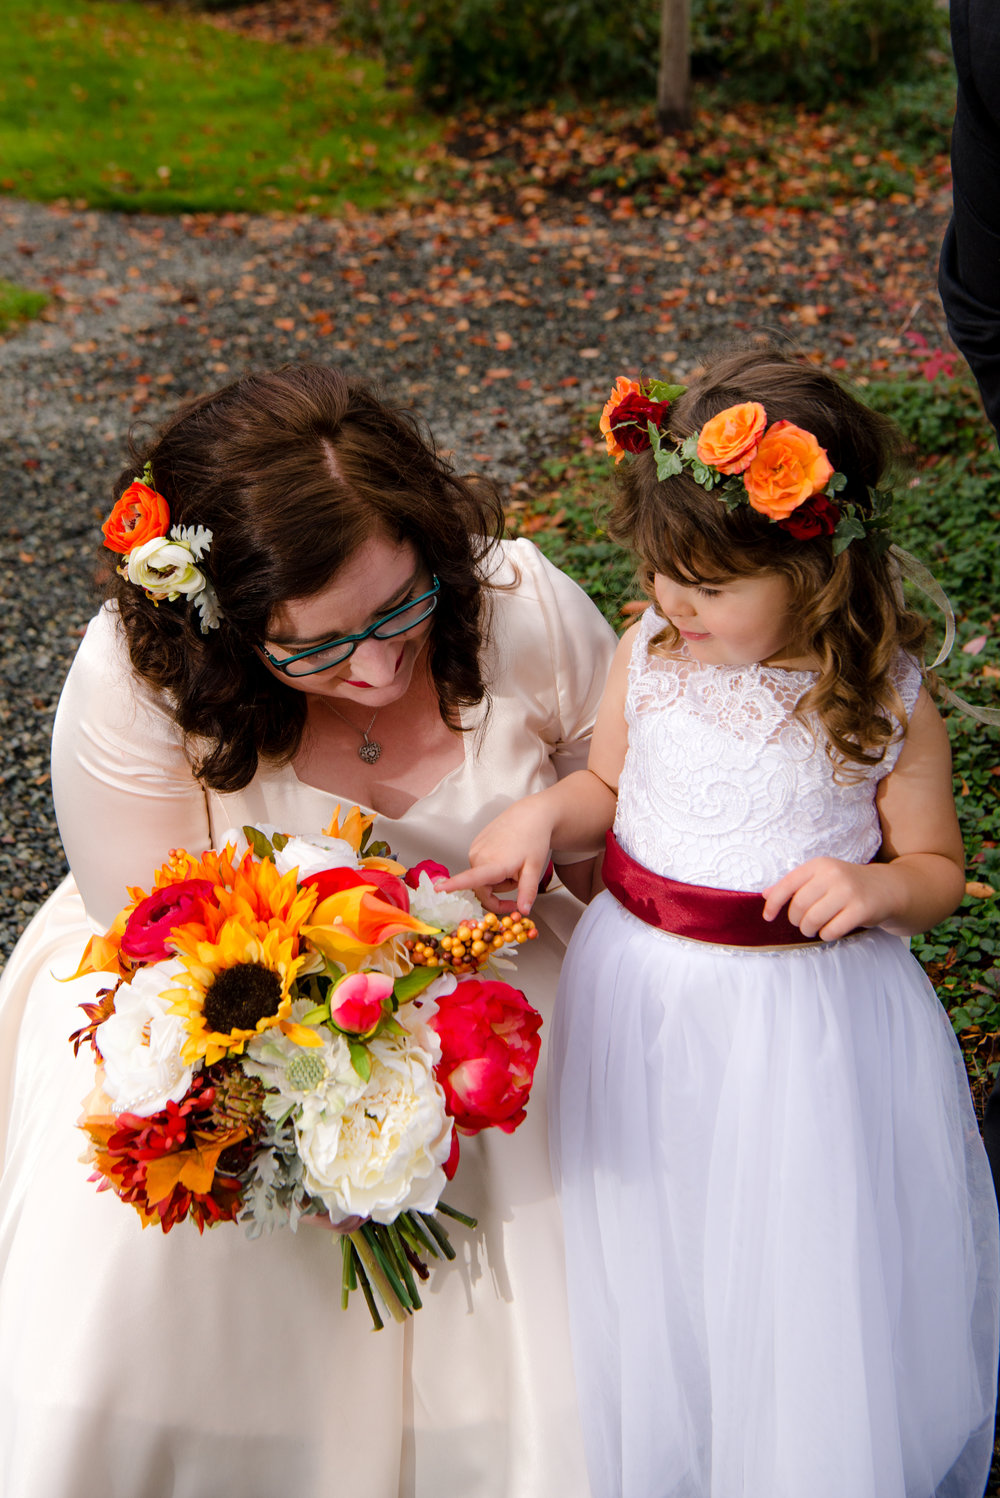 Rini Didier + Matt MacIsaac Wedding_Lodge at Falls City Wedding_Kelsey Lane Photography-4973.jpg